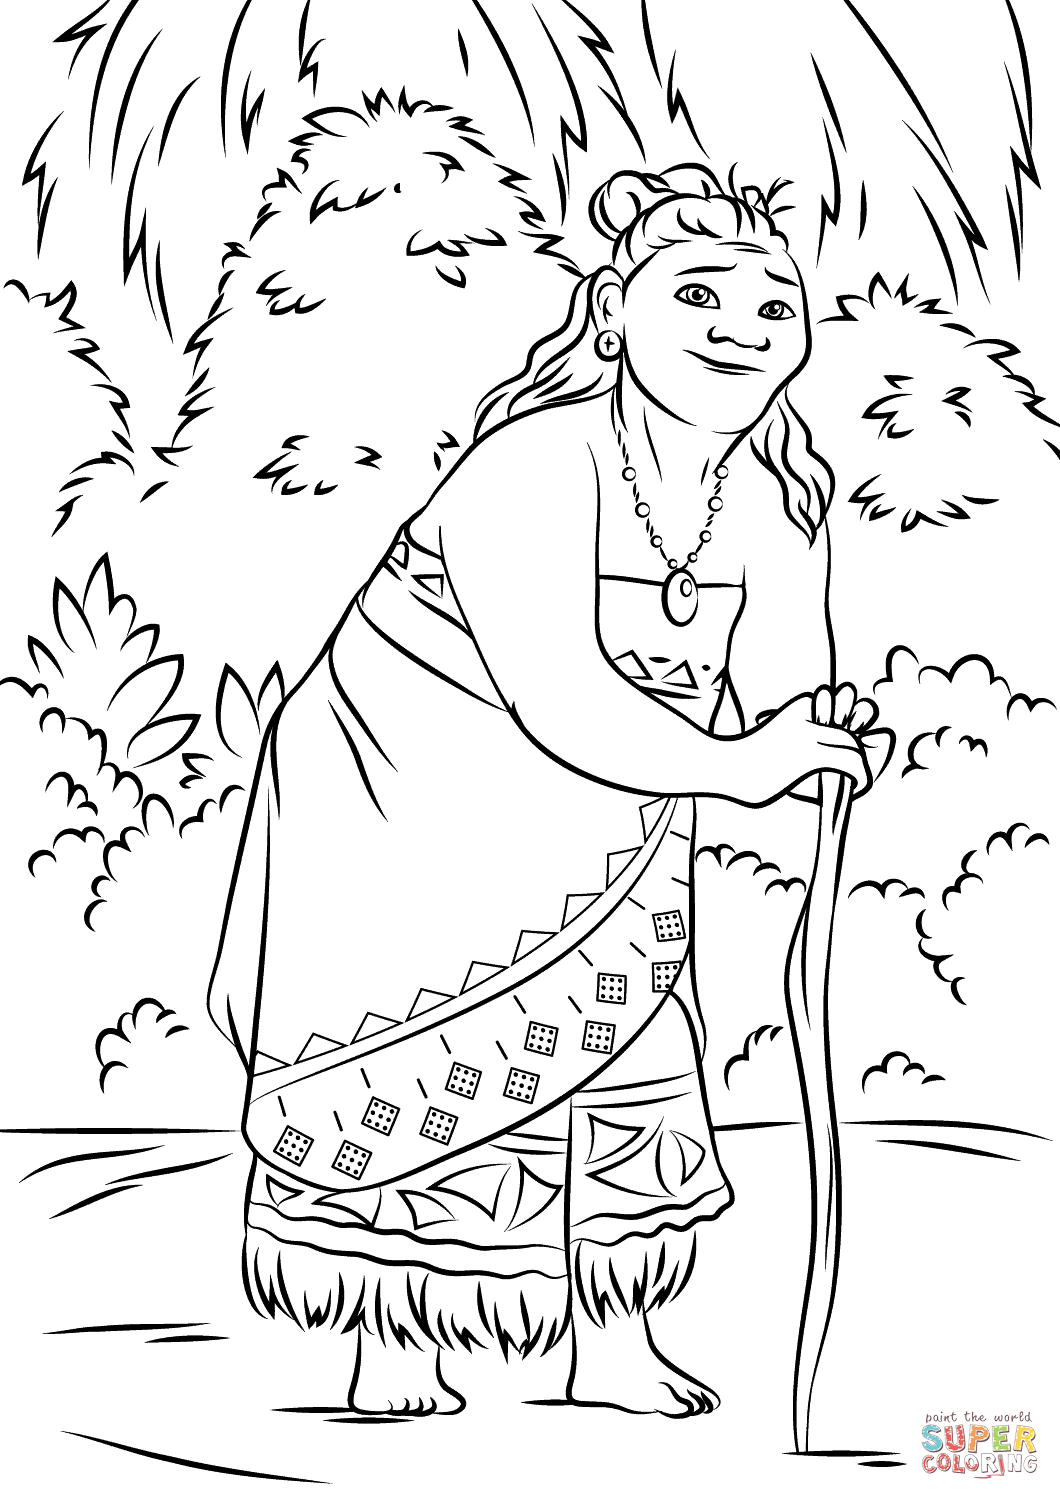 Moana Coloring Pages To Print At Getdrawings Com Free For Personal